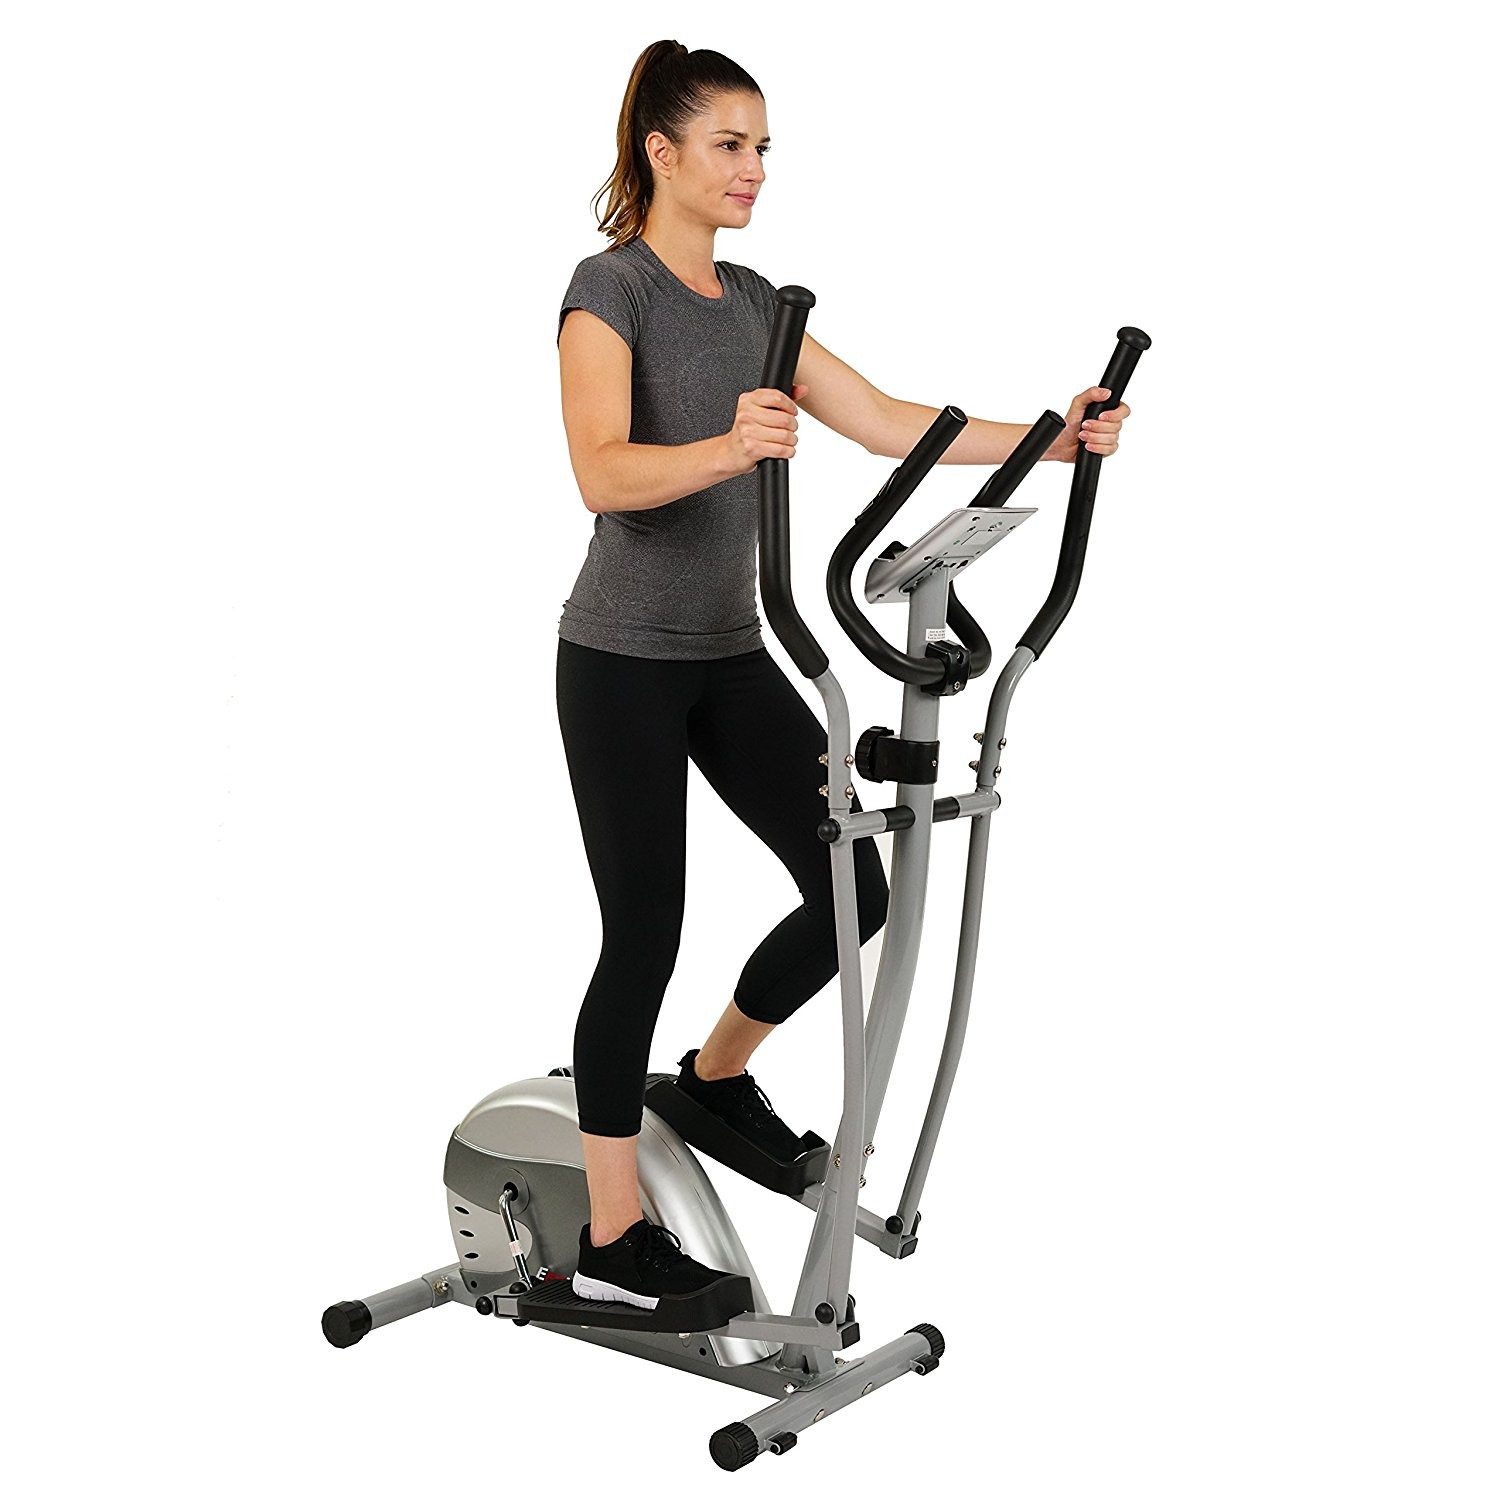 NEW: Best Cardio Machine Reviews 2020 | Top Expert Choices